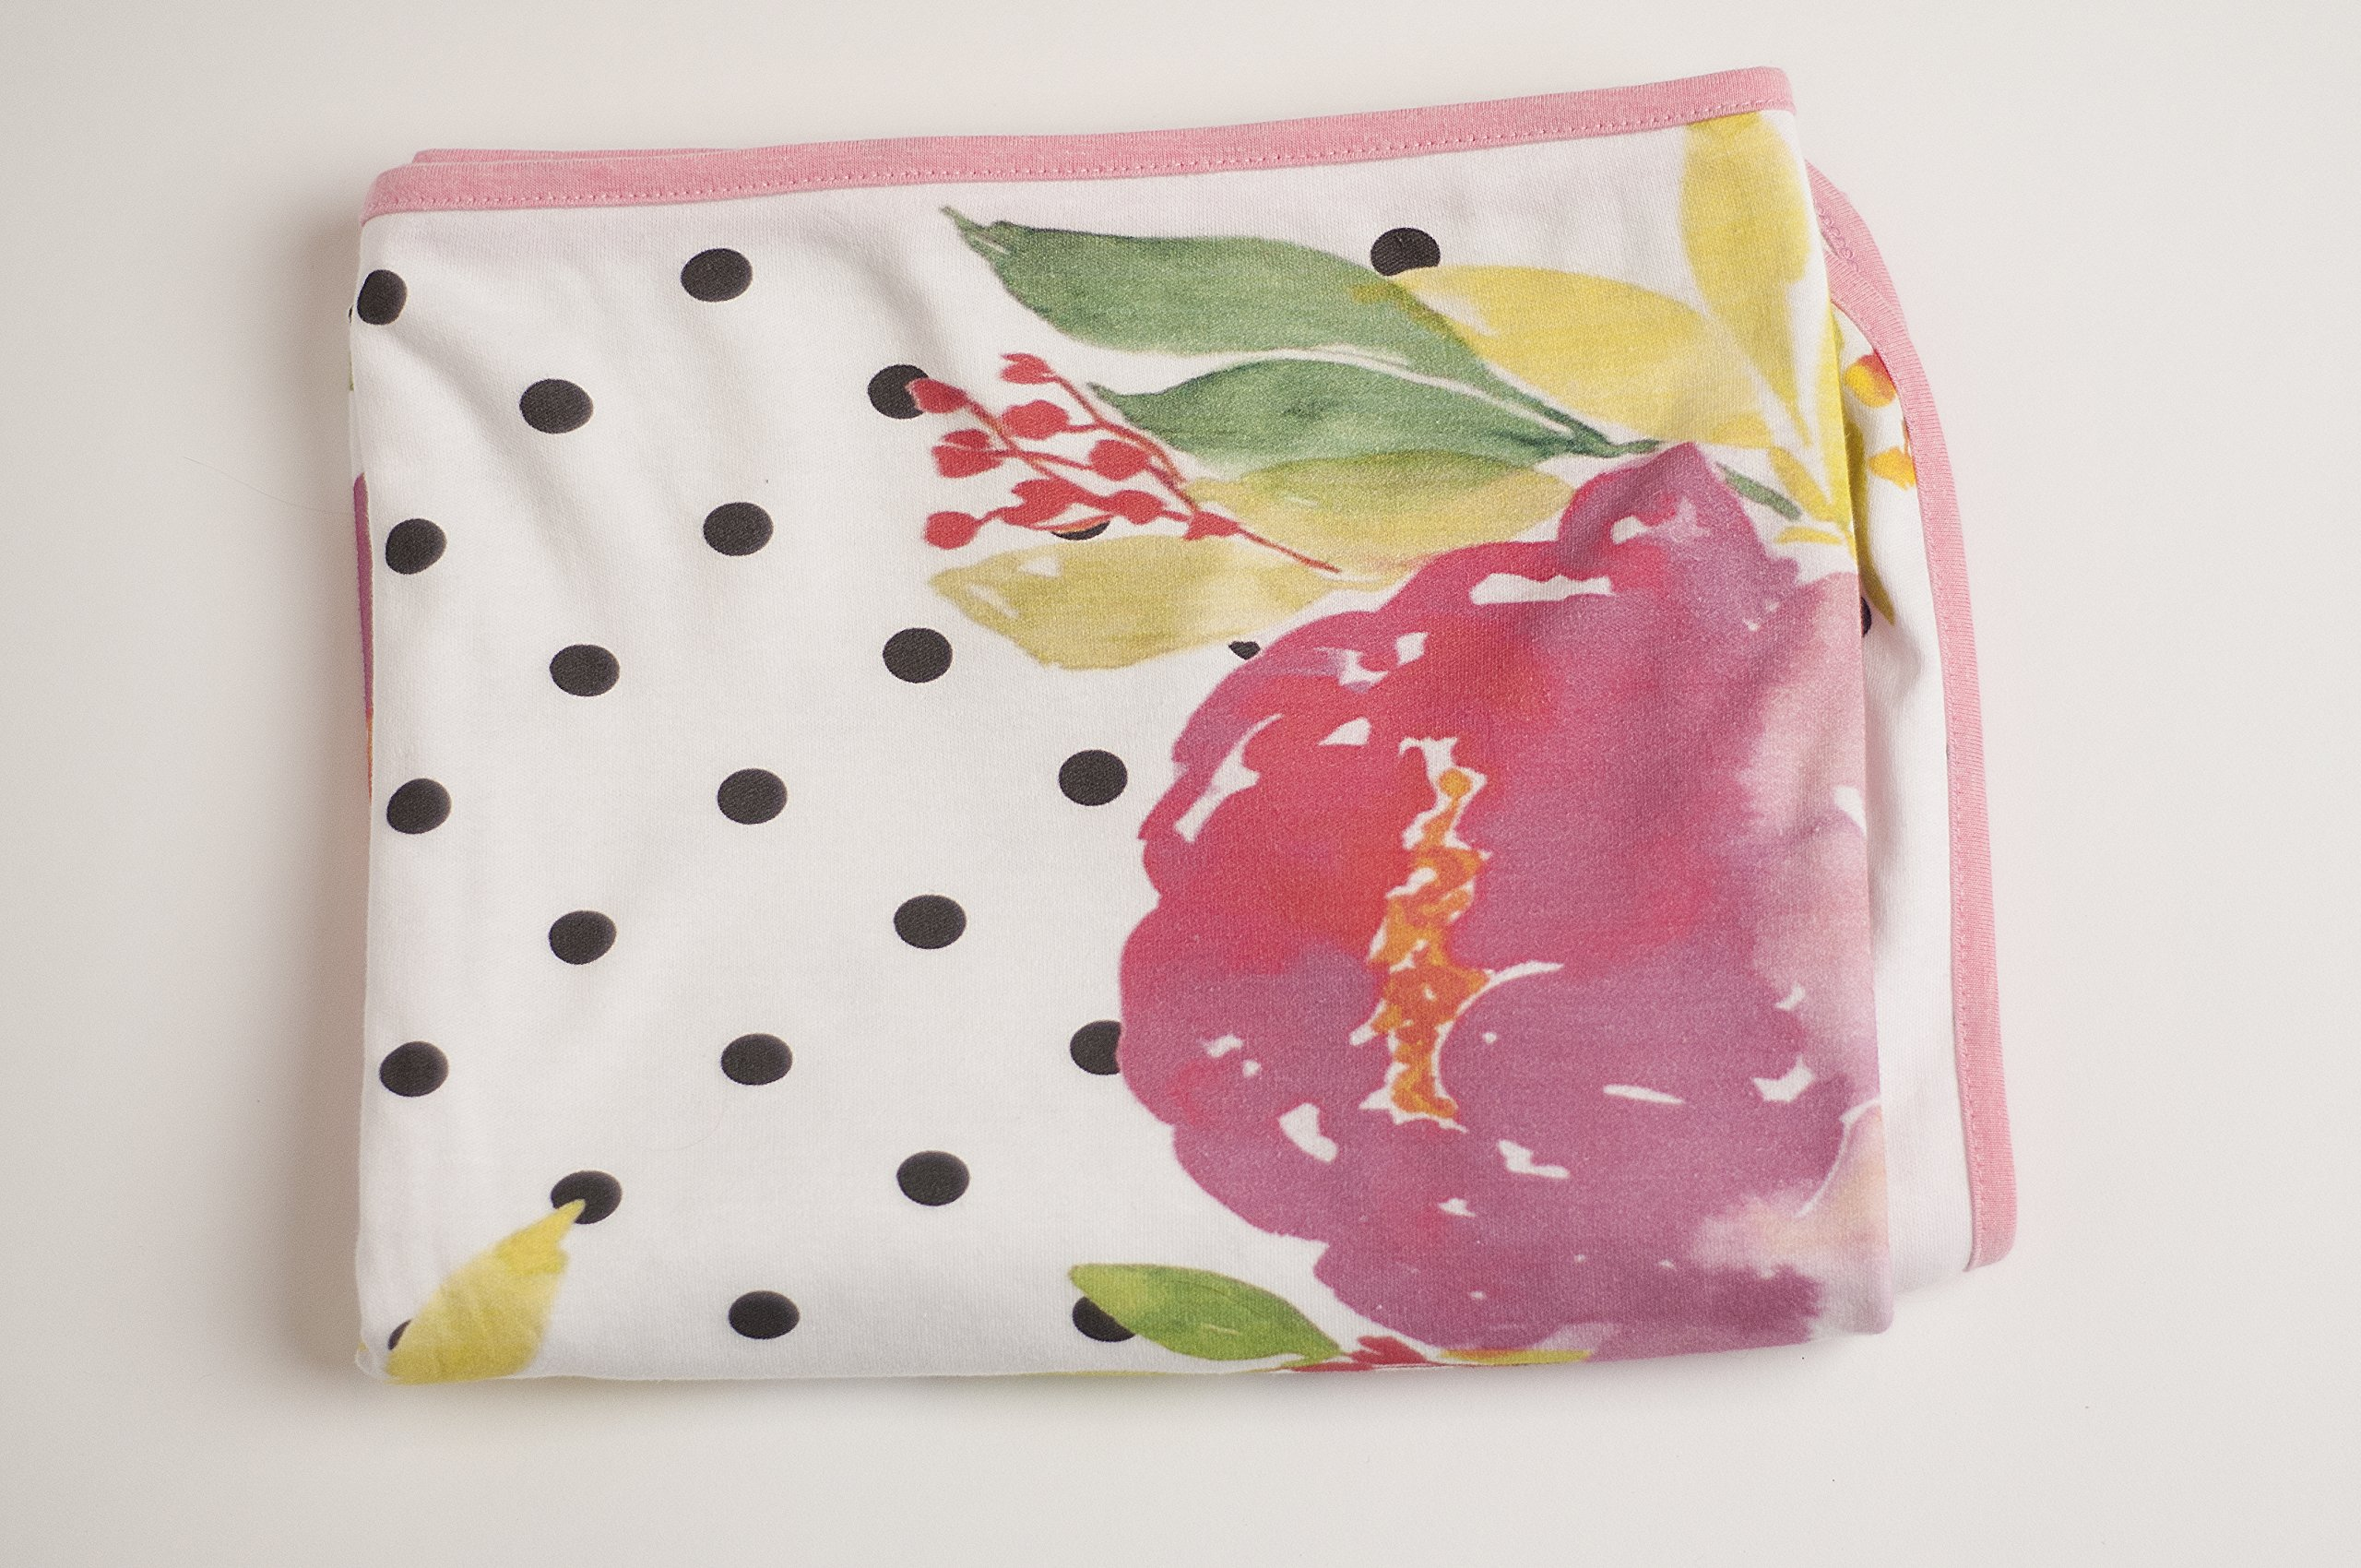 Premium Cotton Large Baby Swaddle Receiving Blanket Stretchy (White, Pinks, Floral)